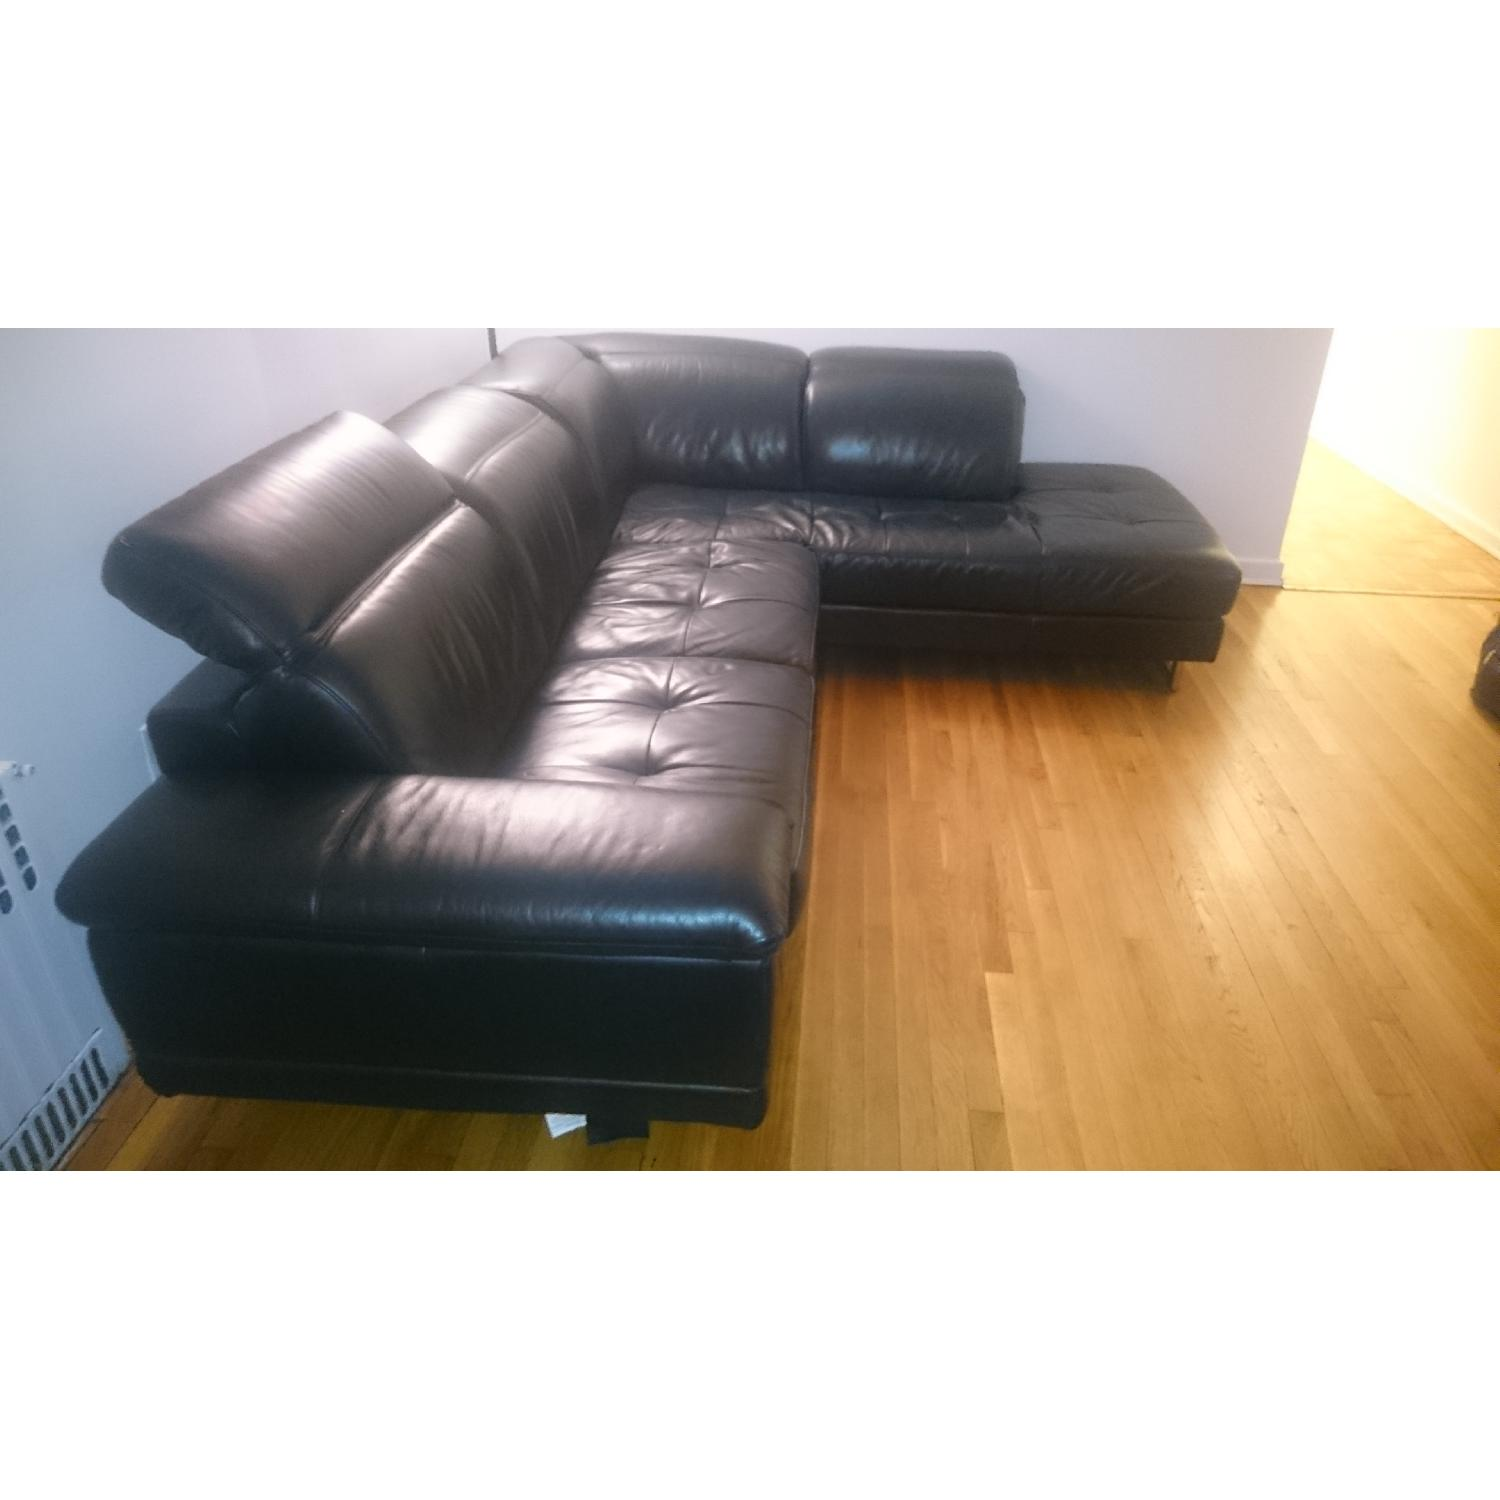 J&M Furniture Black Italian Leather Sectional Couch - image-3